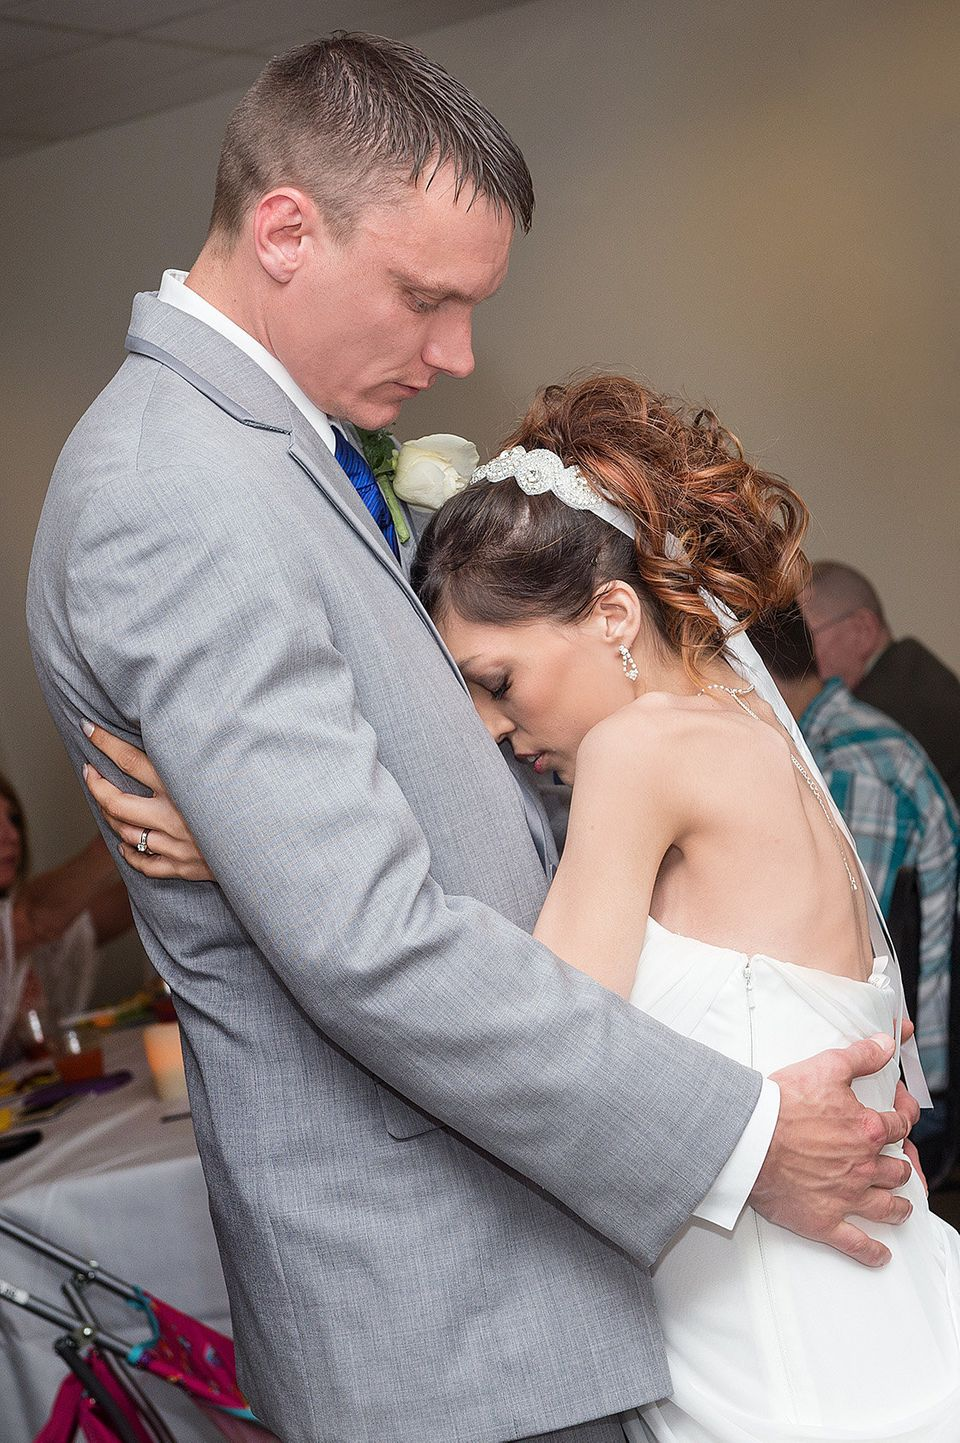 Brandon Thomas and Destini Schafer have their first dance at their reception held in a conference room at Memorial Medical Ce